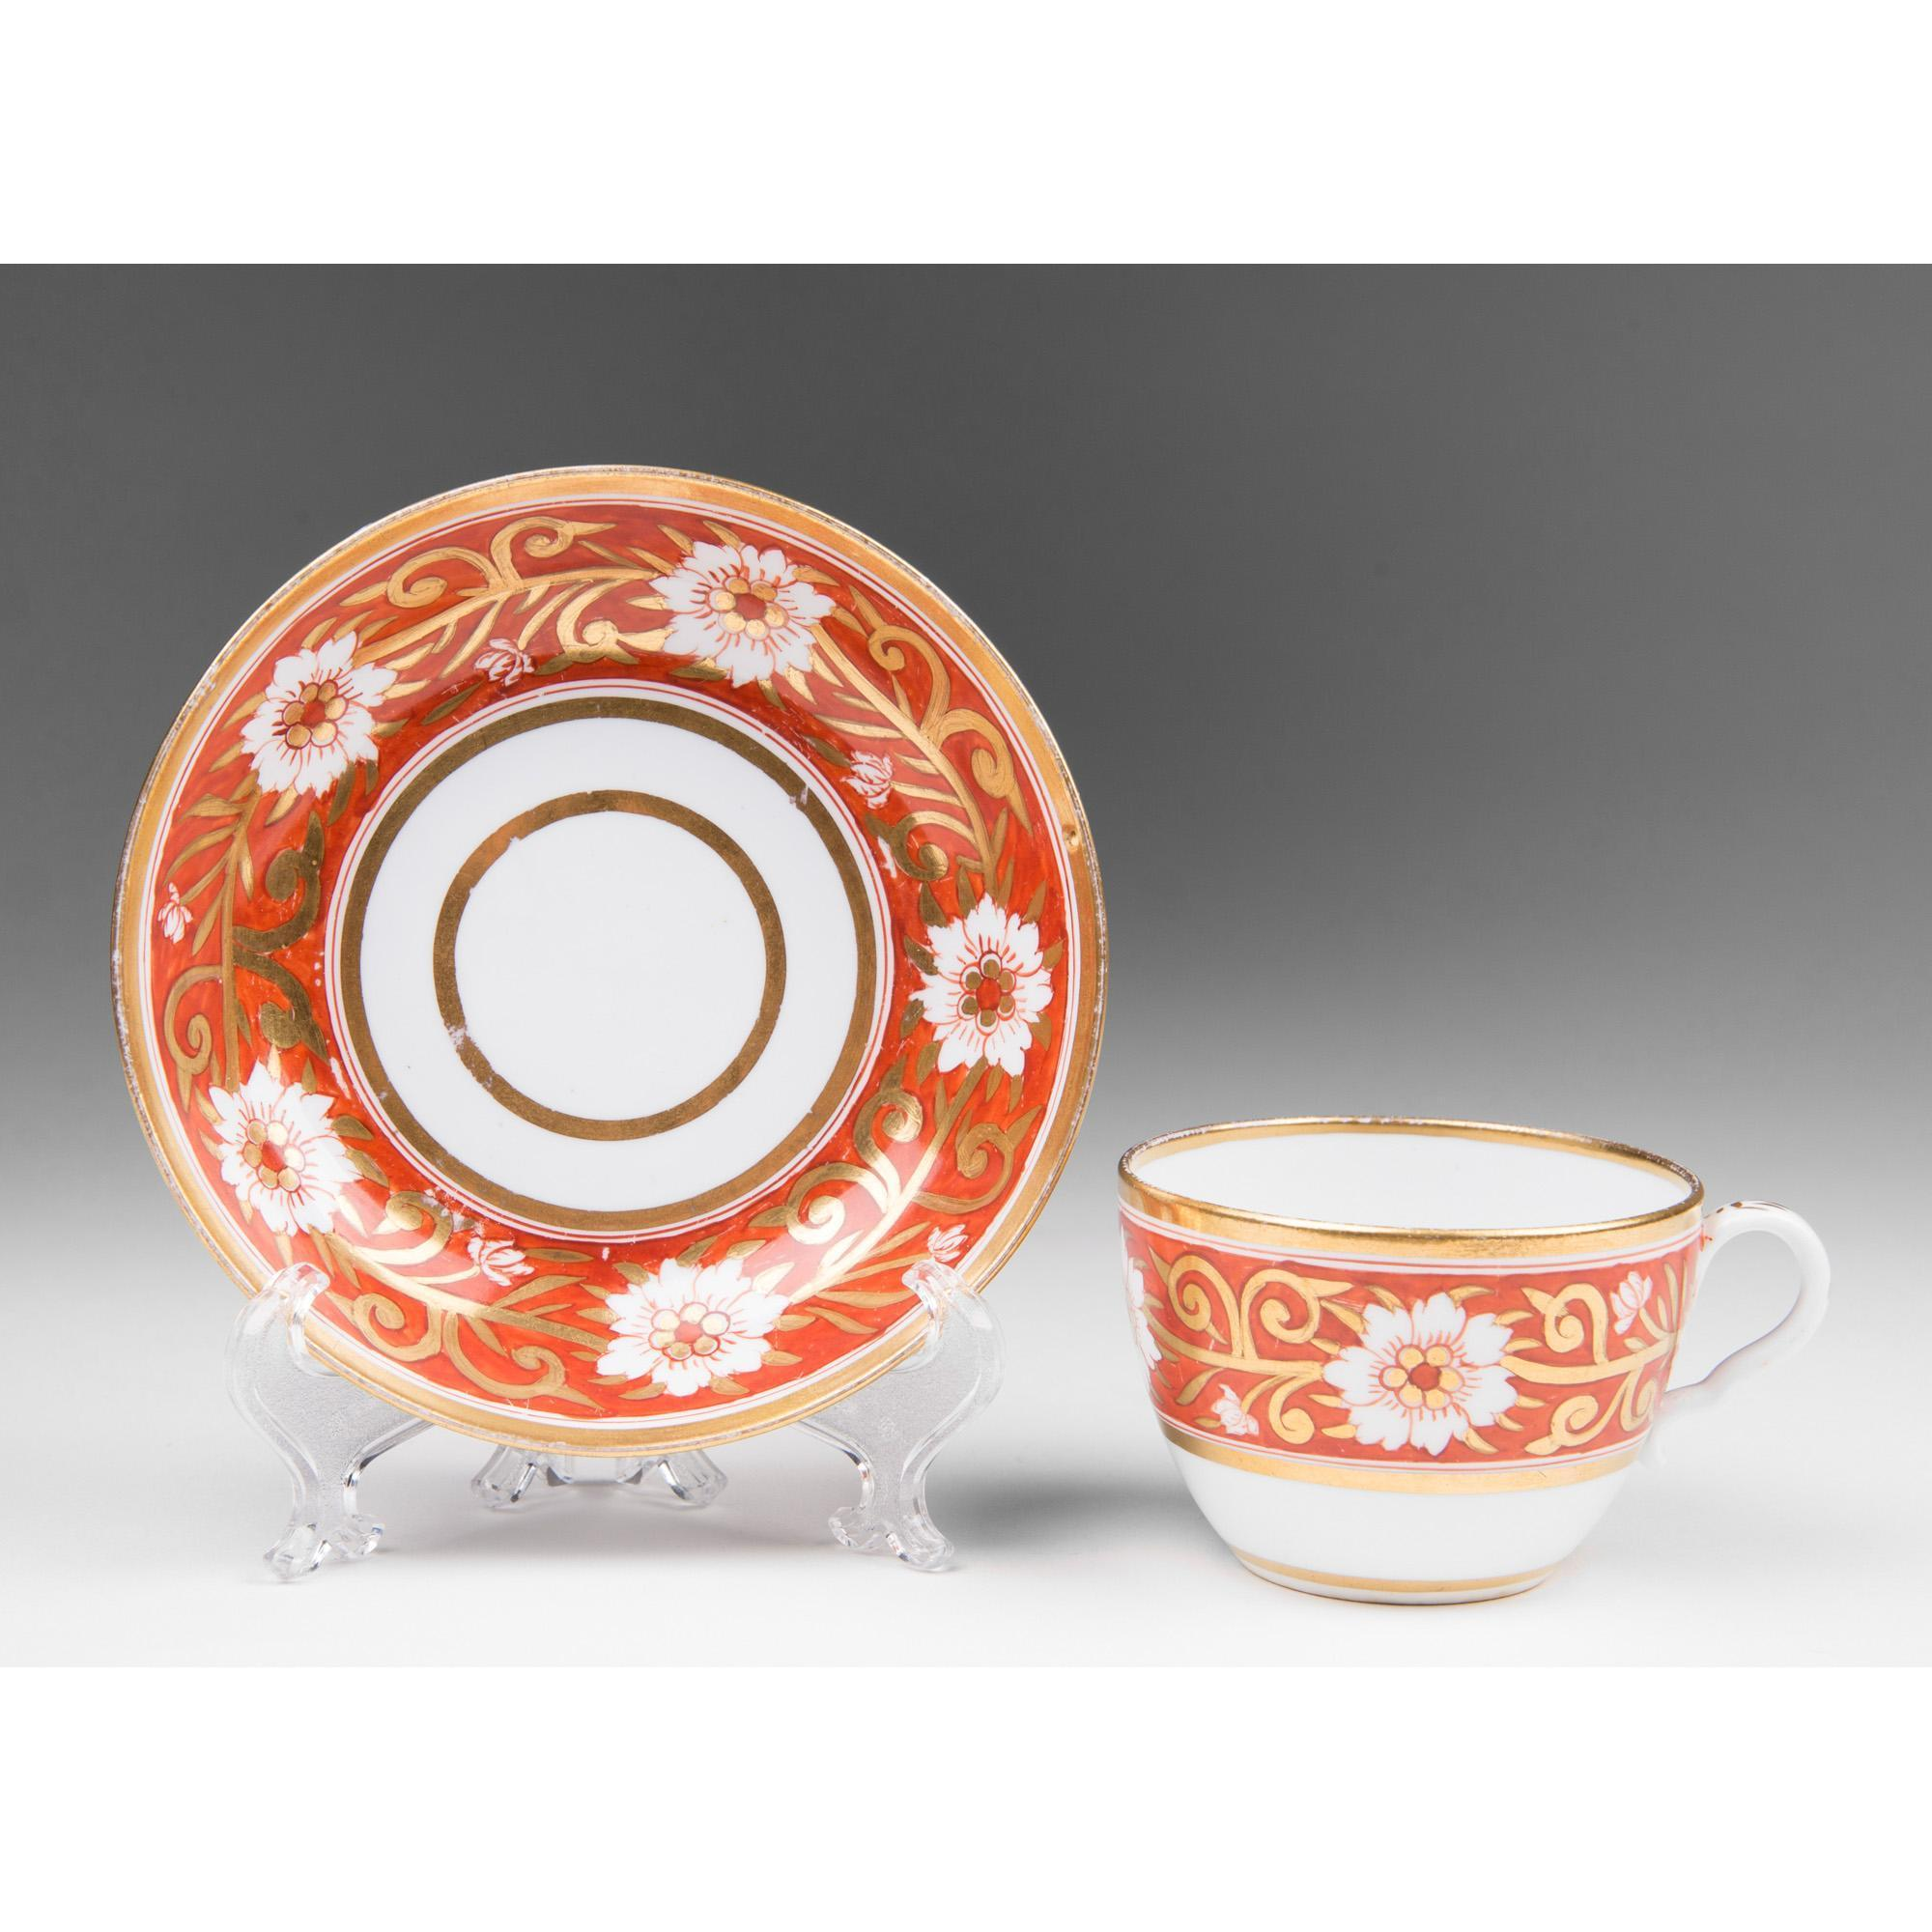 Early 19th C. Derby Cup & Saucer